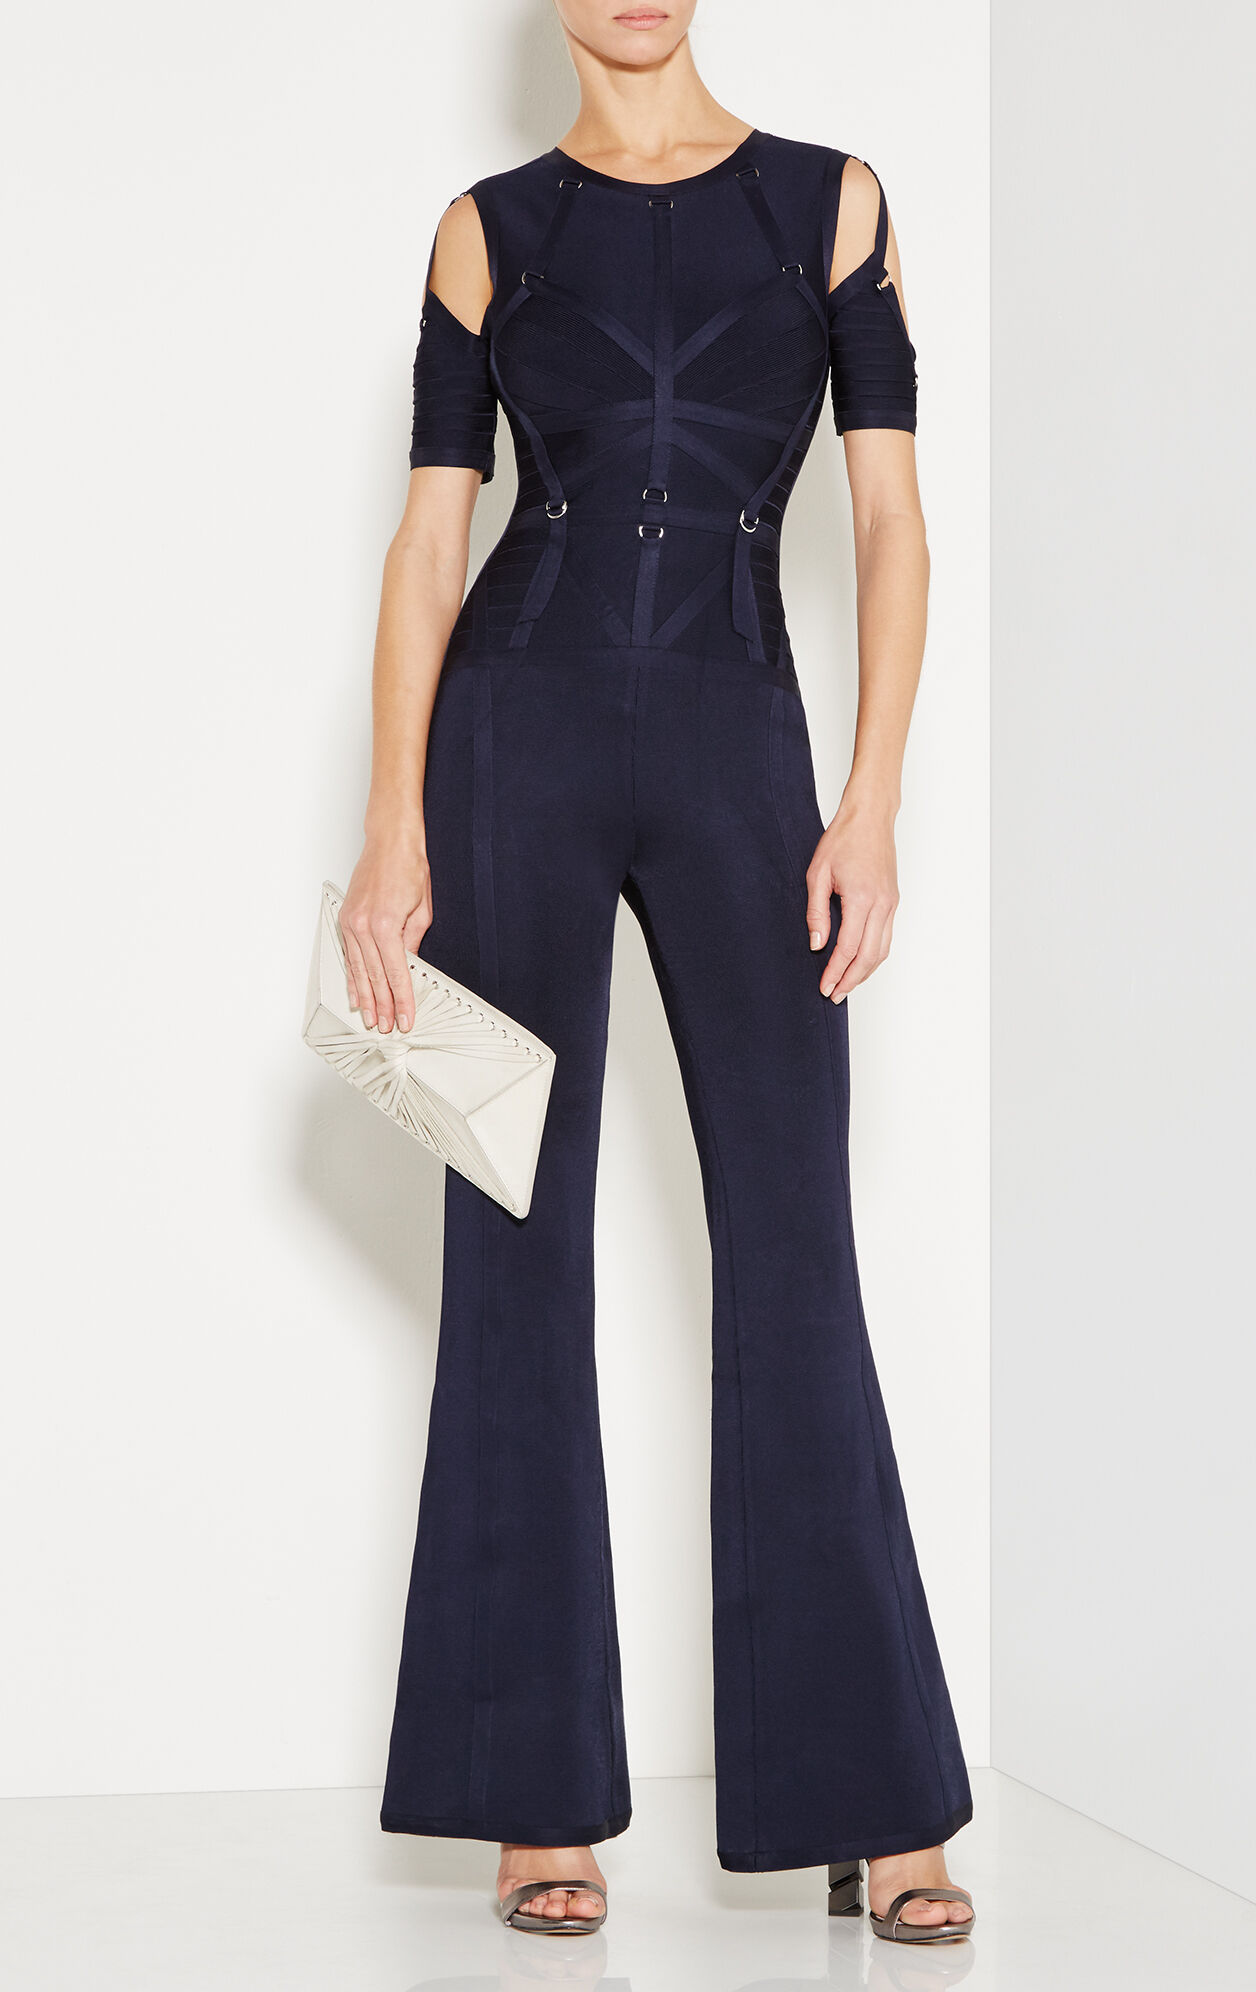 Kenddal Ribbon Bandage D-Ring Jumpsuit